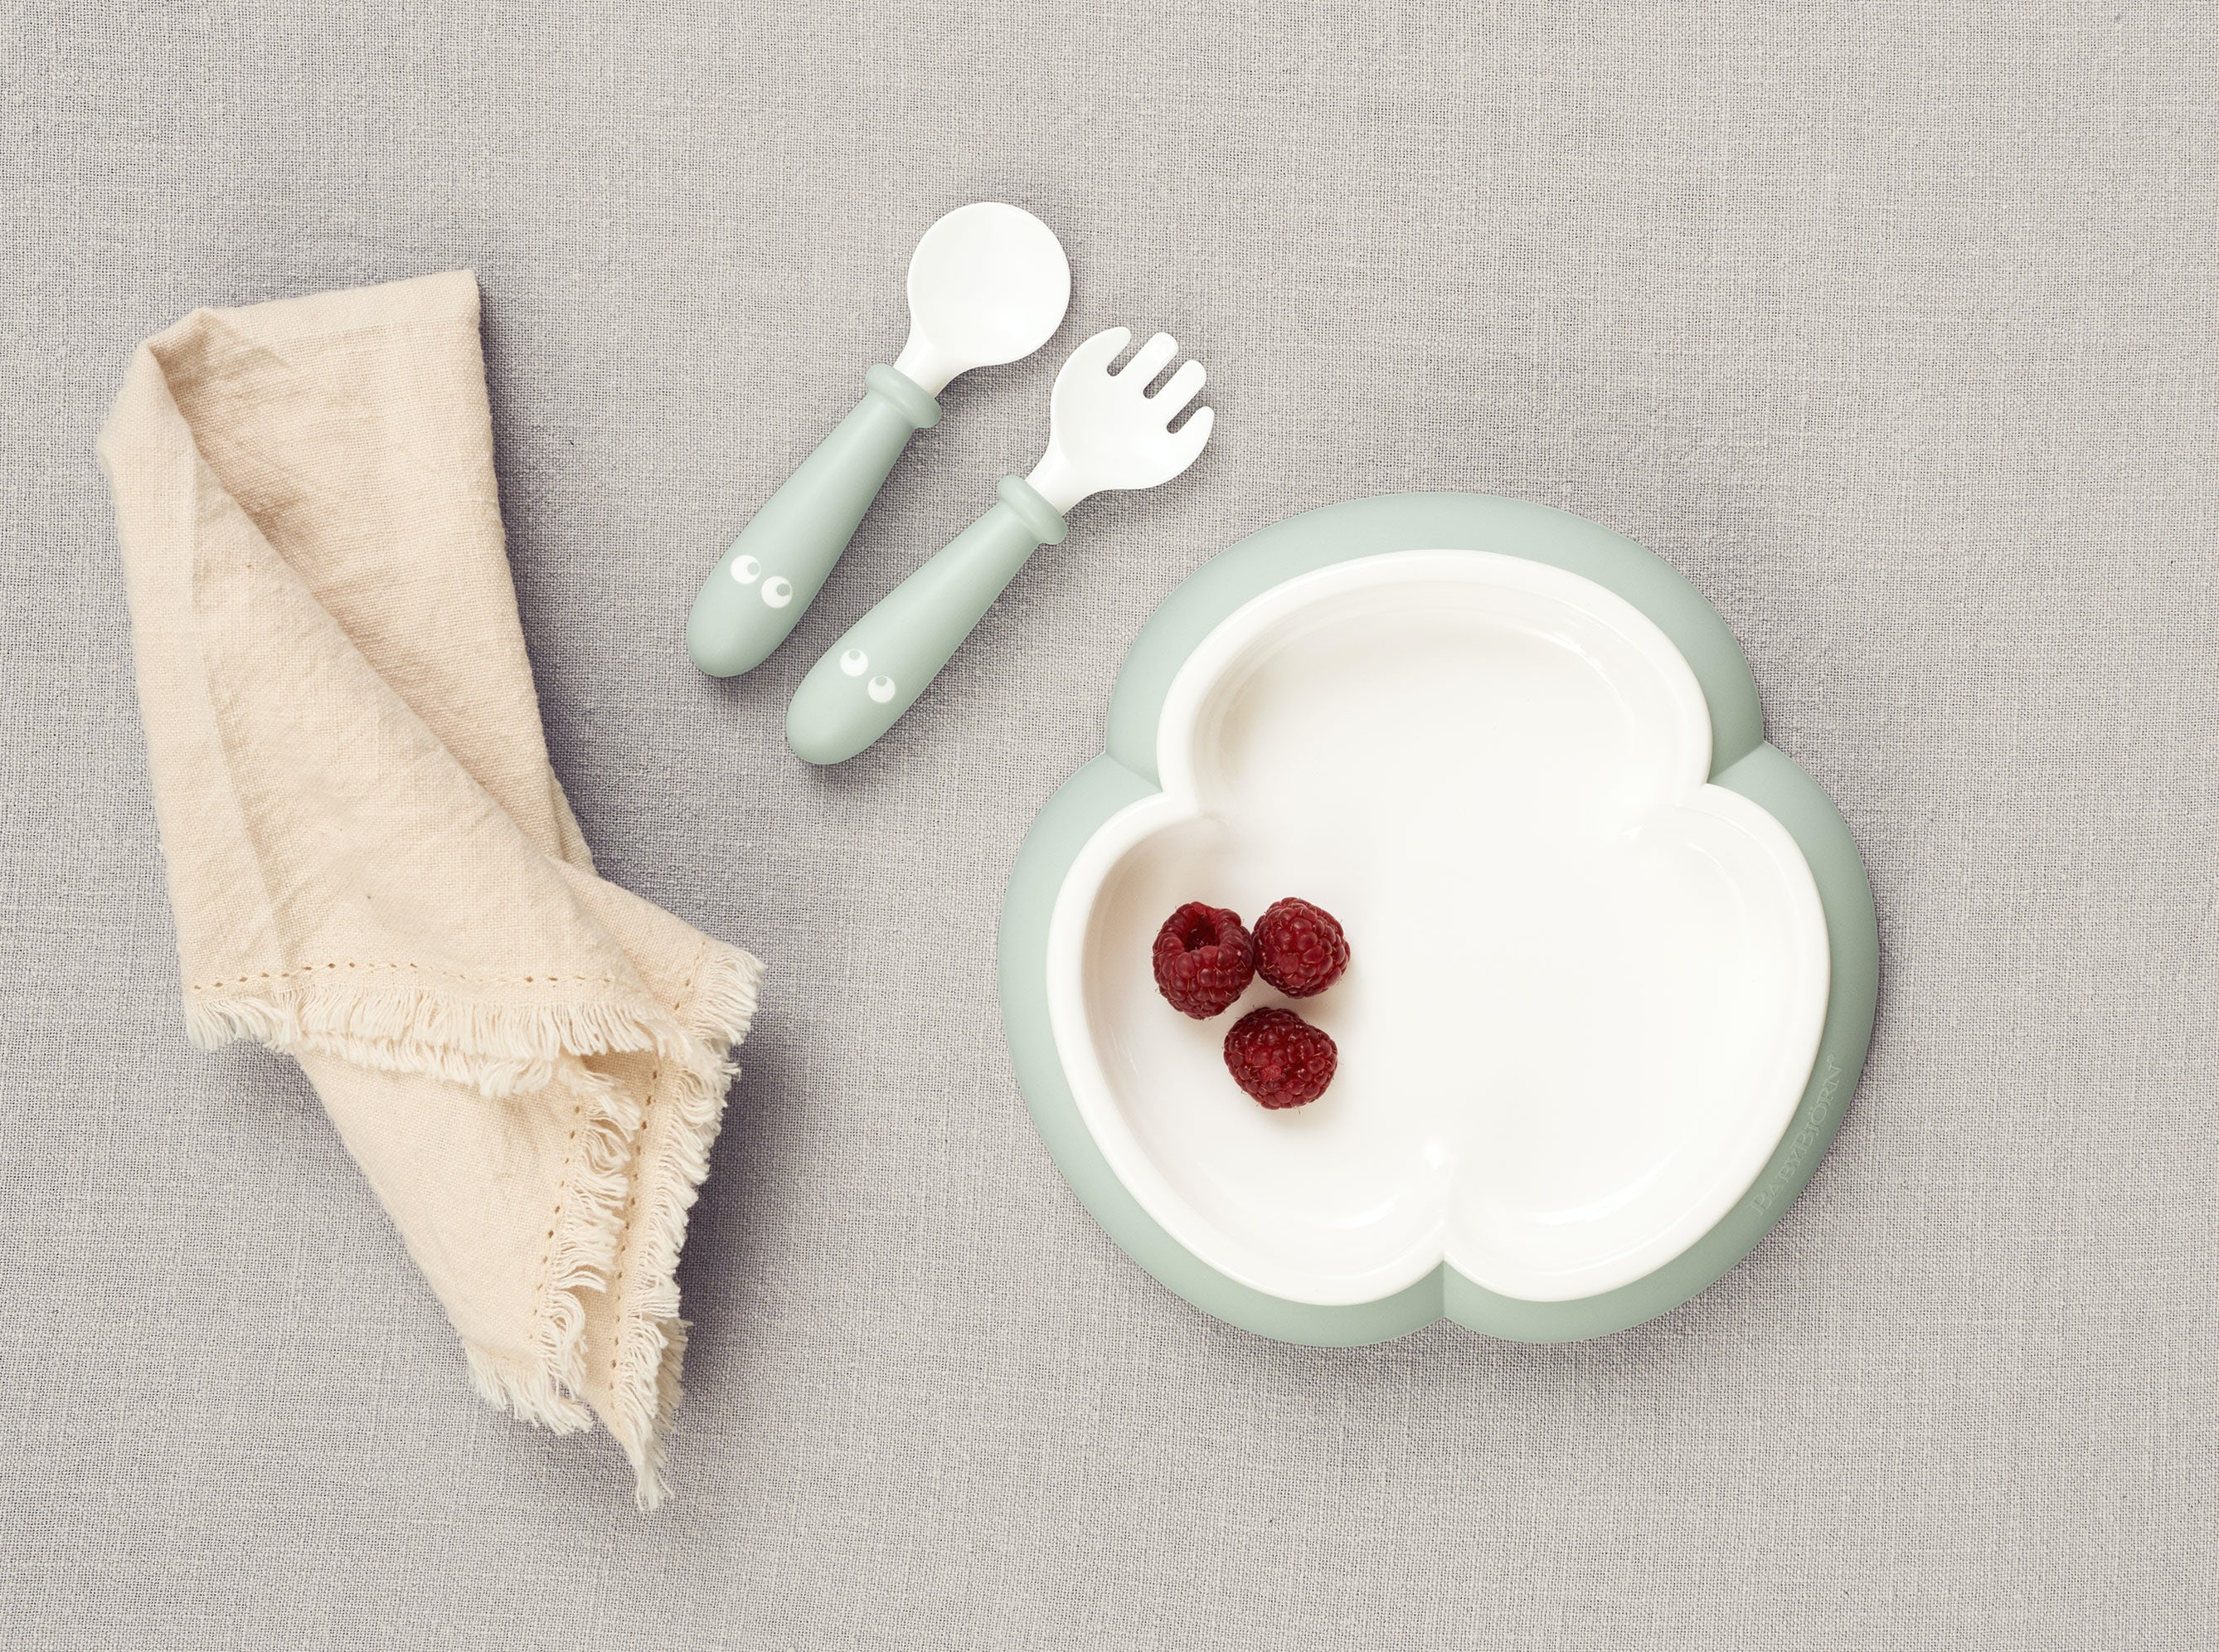 Baby Plate Set Including Baby Silverware Babybj 214 Rn